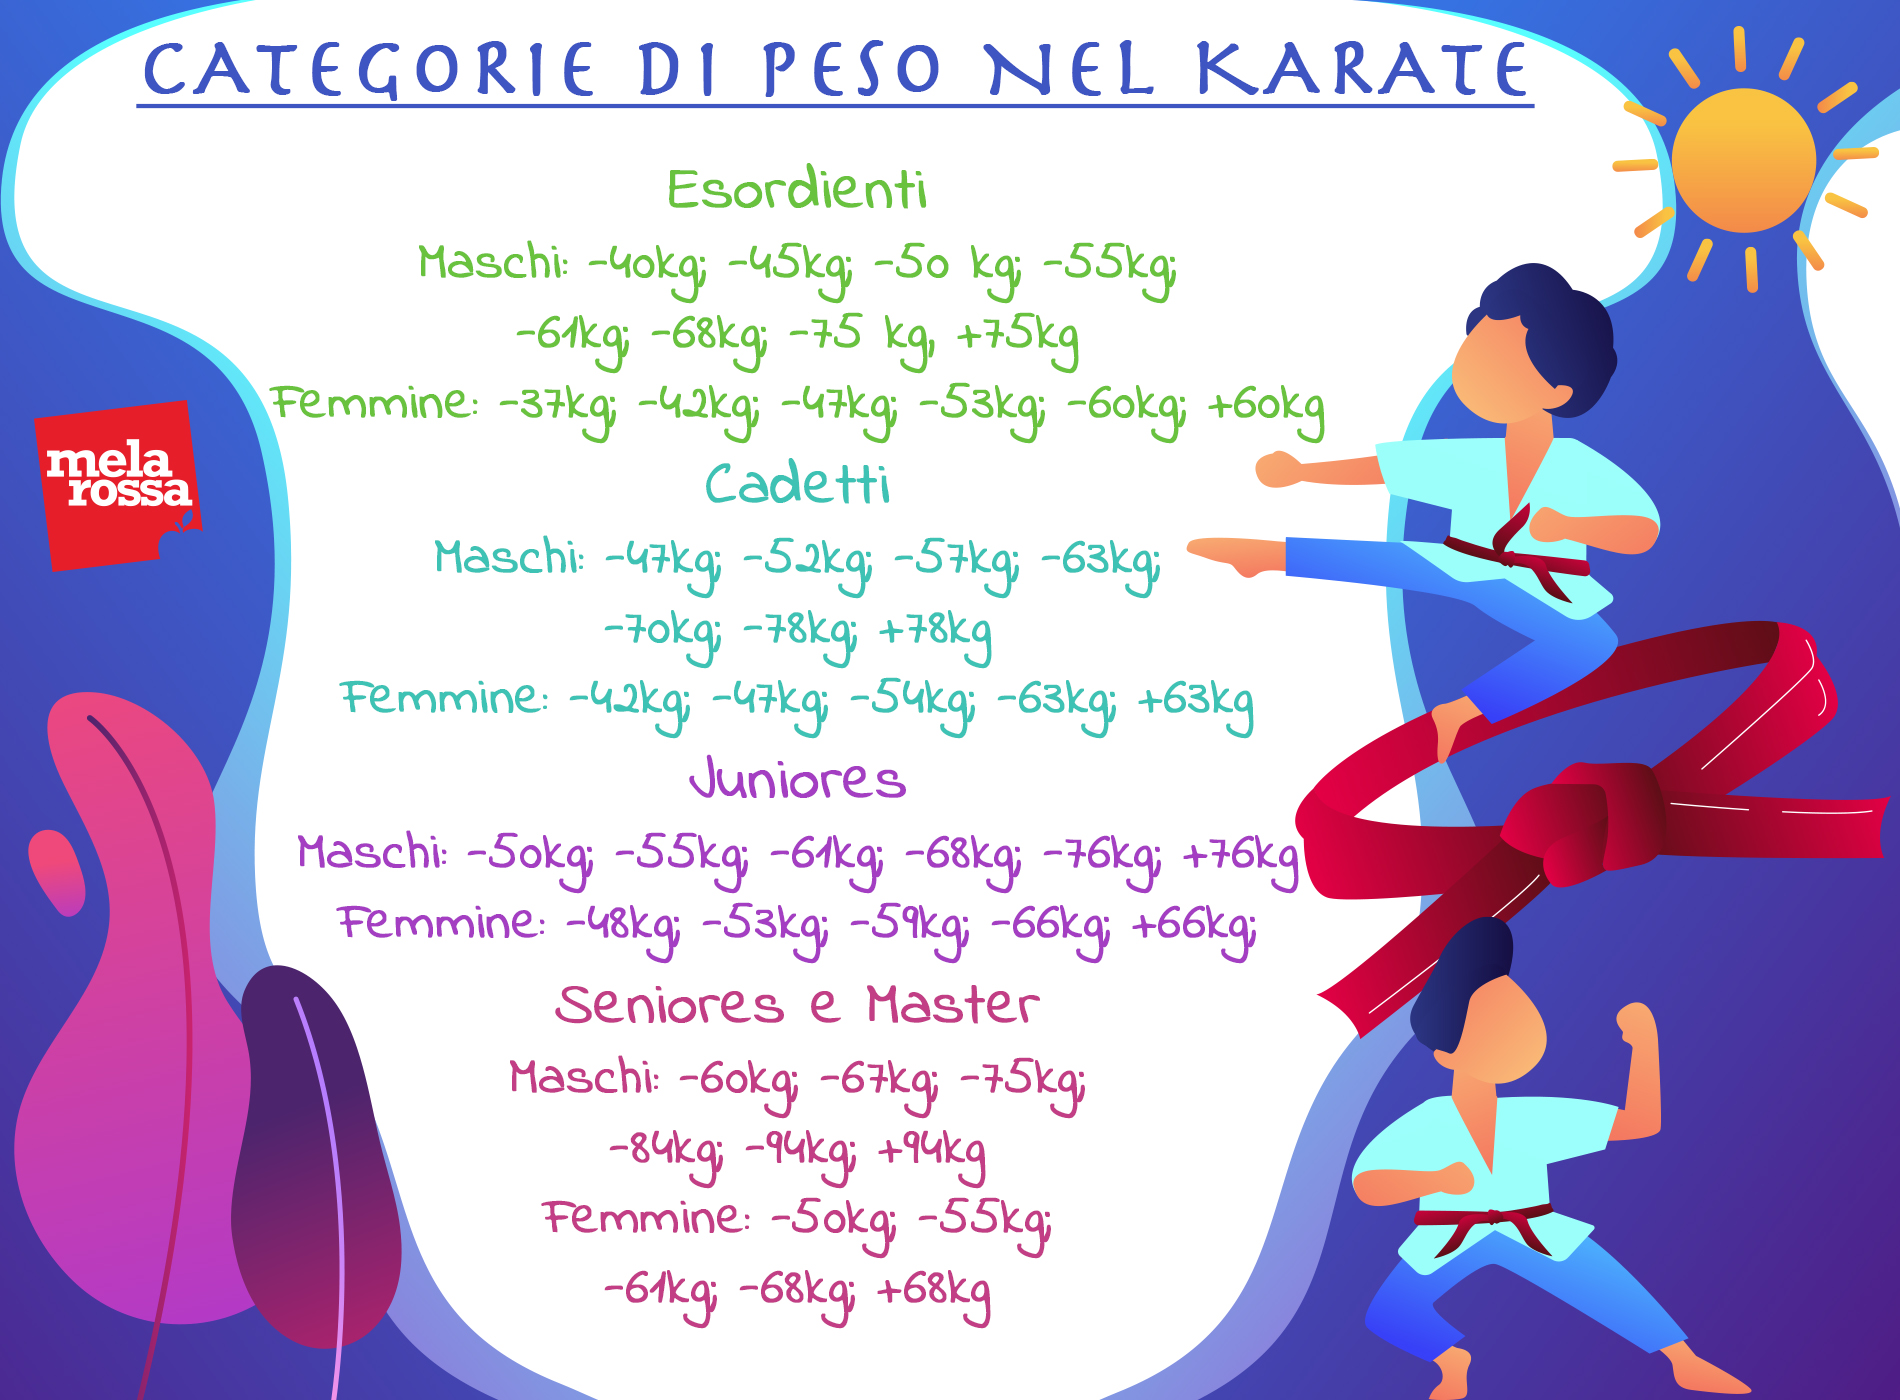 karate: categorie di peso